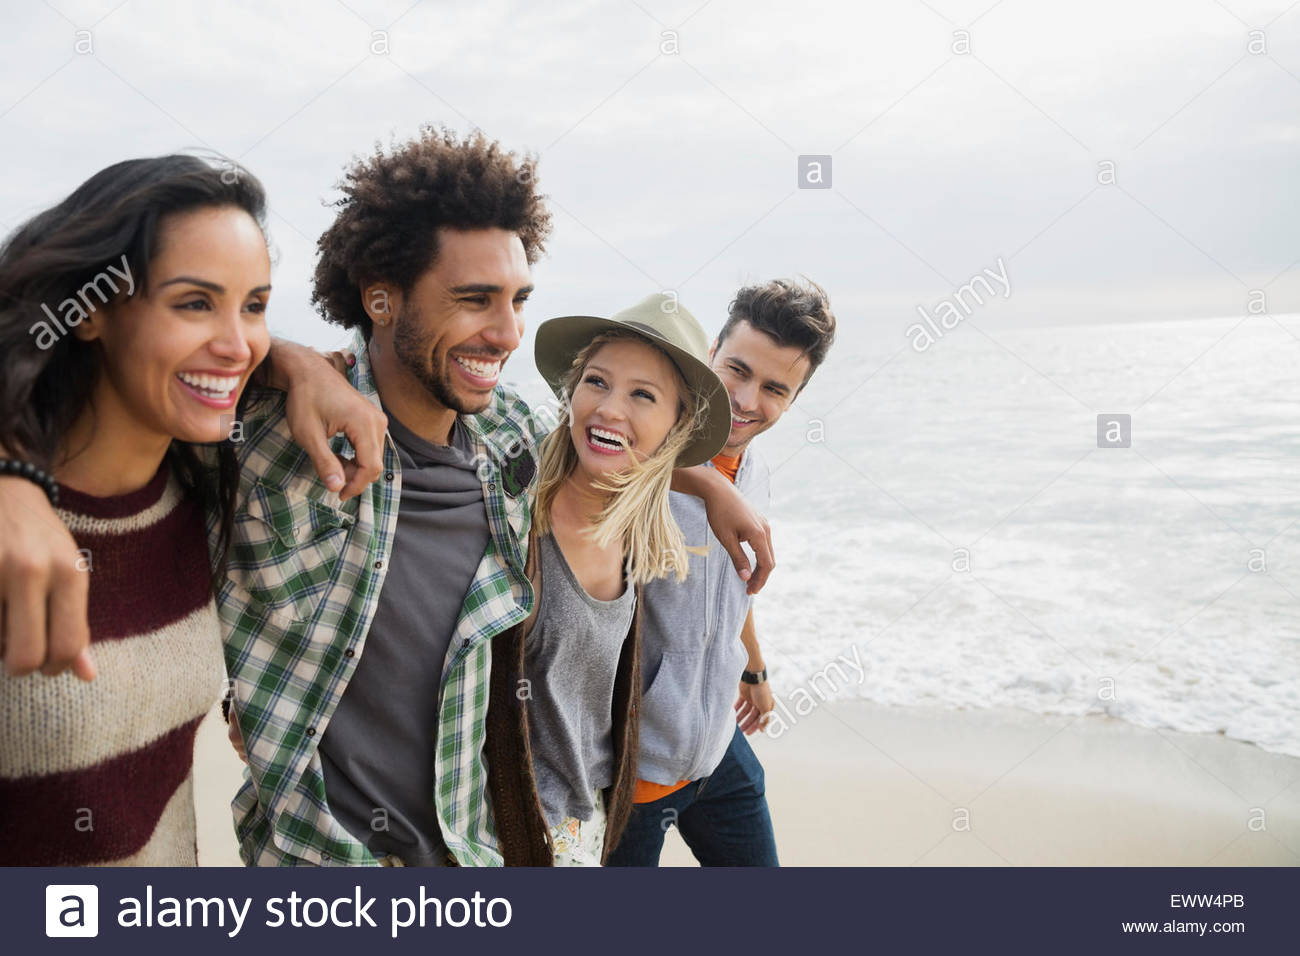 friends walking together stock photos friends walking together